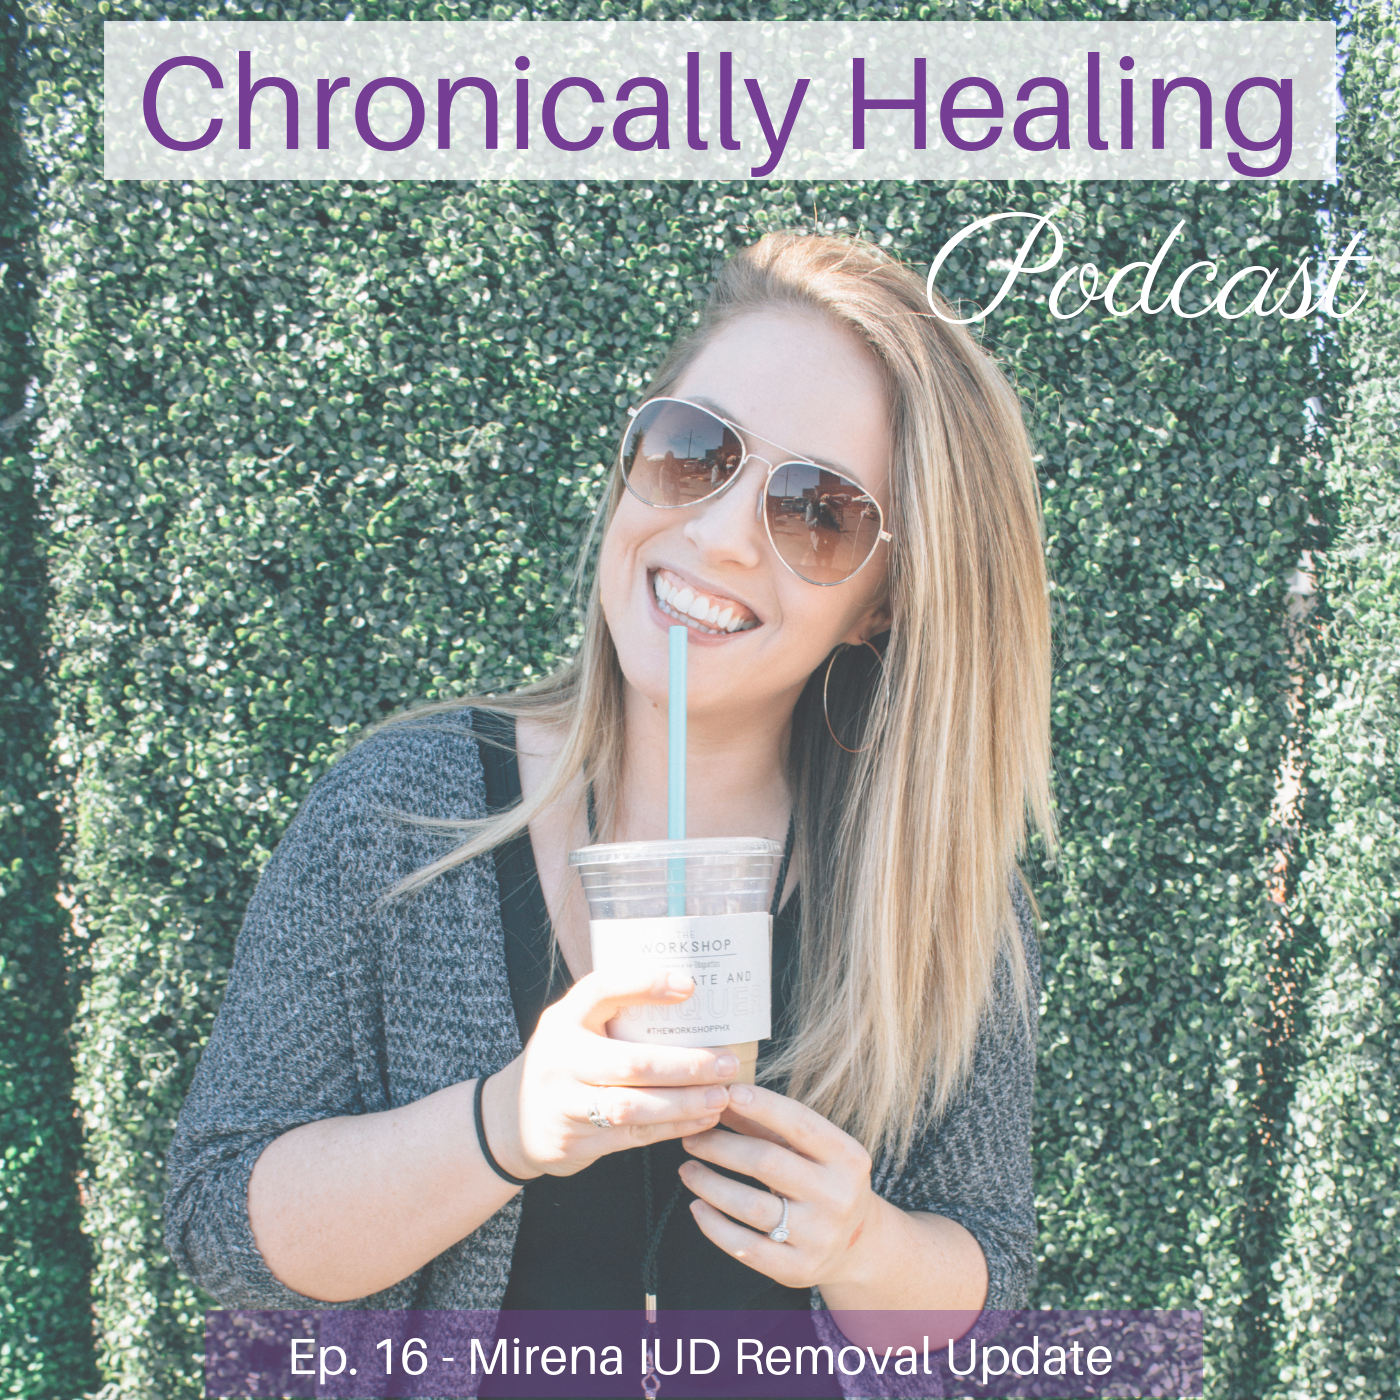 Chronically Healing Podcast Ep. 16 – Mirena IUD Removal Update with Jessie